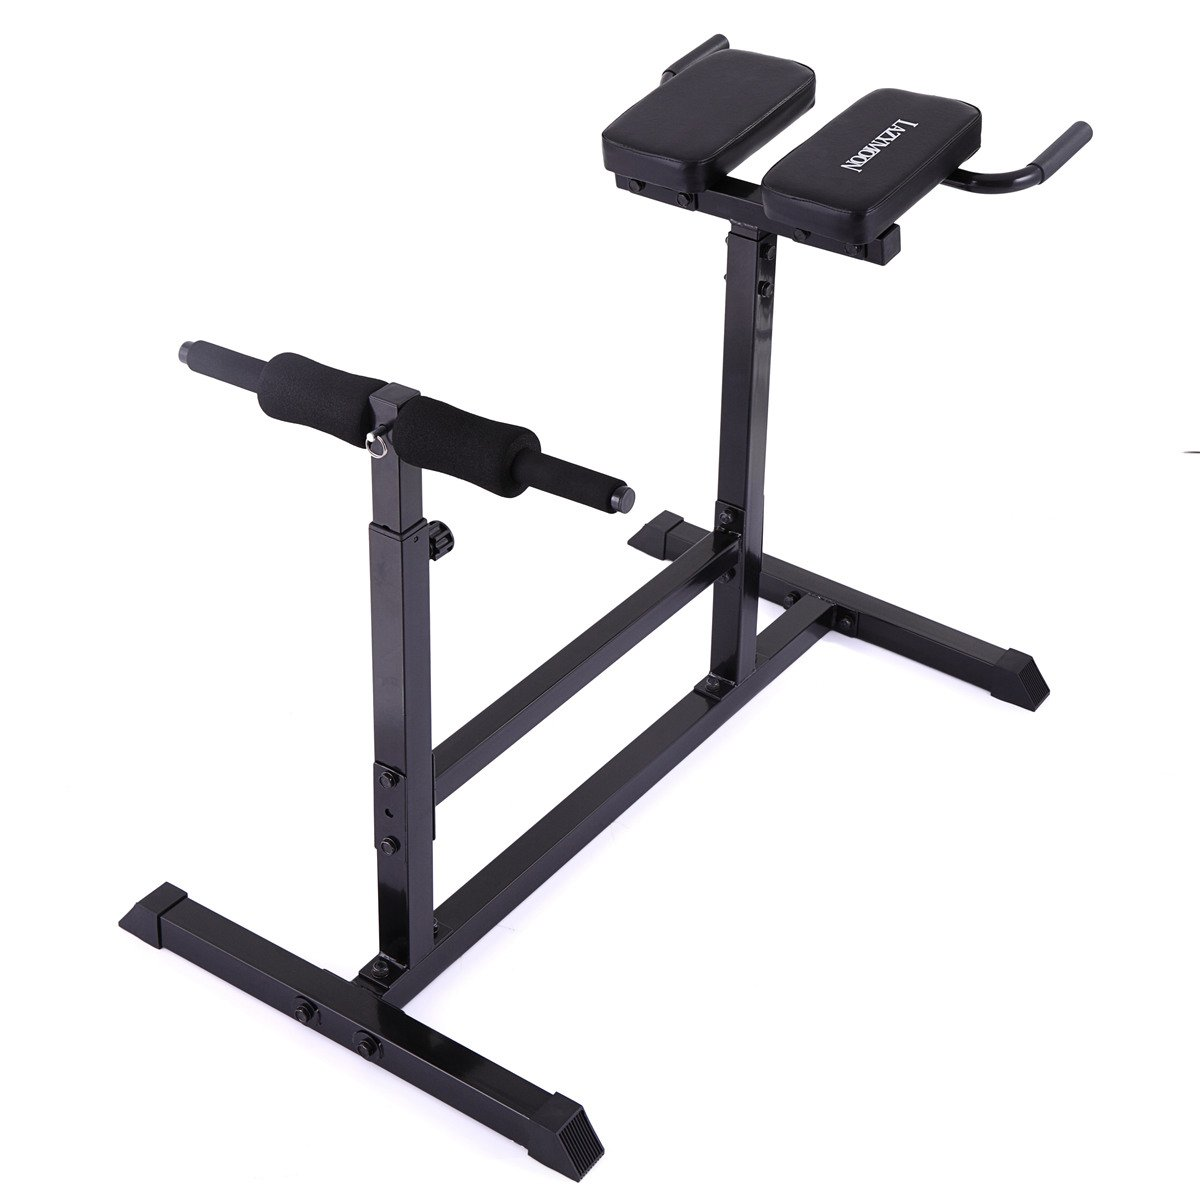 LAZYMOON Roman Chair Back Hyperextension Abdominal Bench Gym Strength Exercise Home Gym Workout Training by LAZYMOON